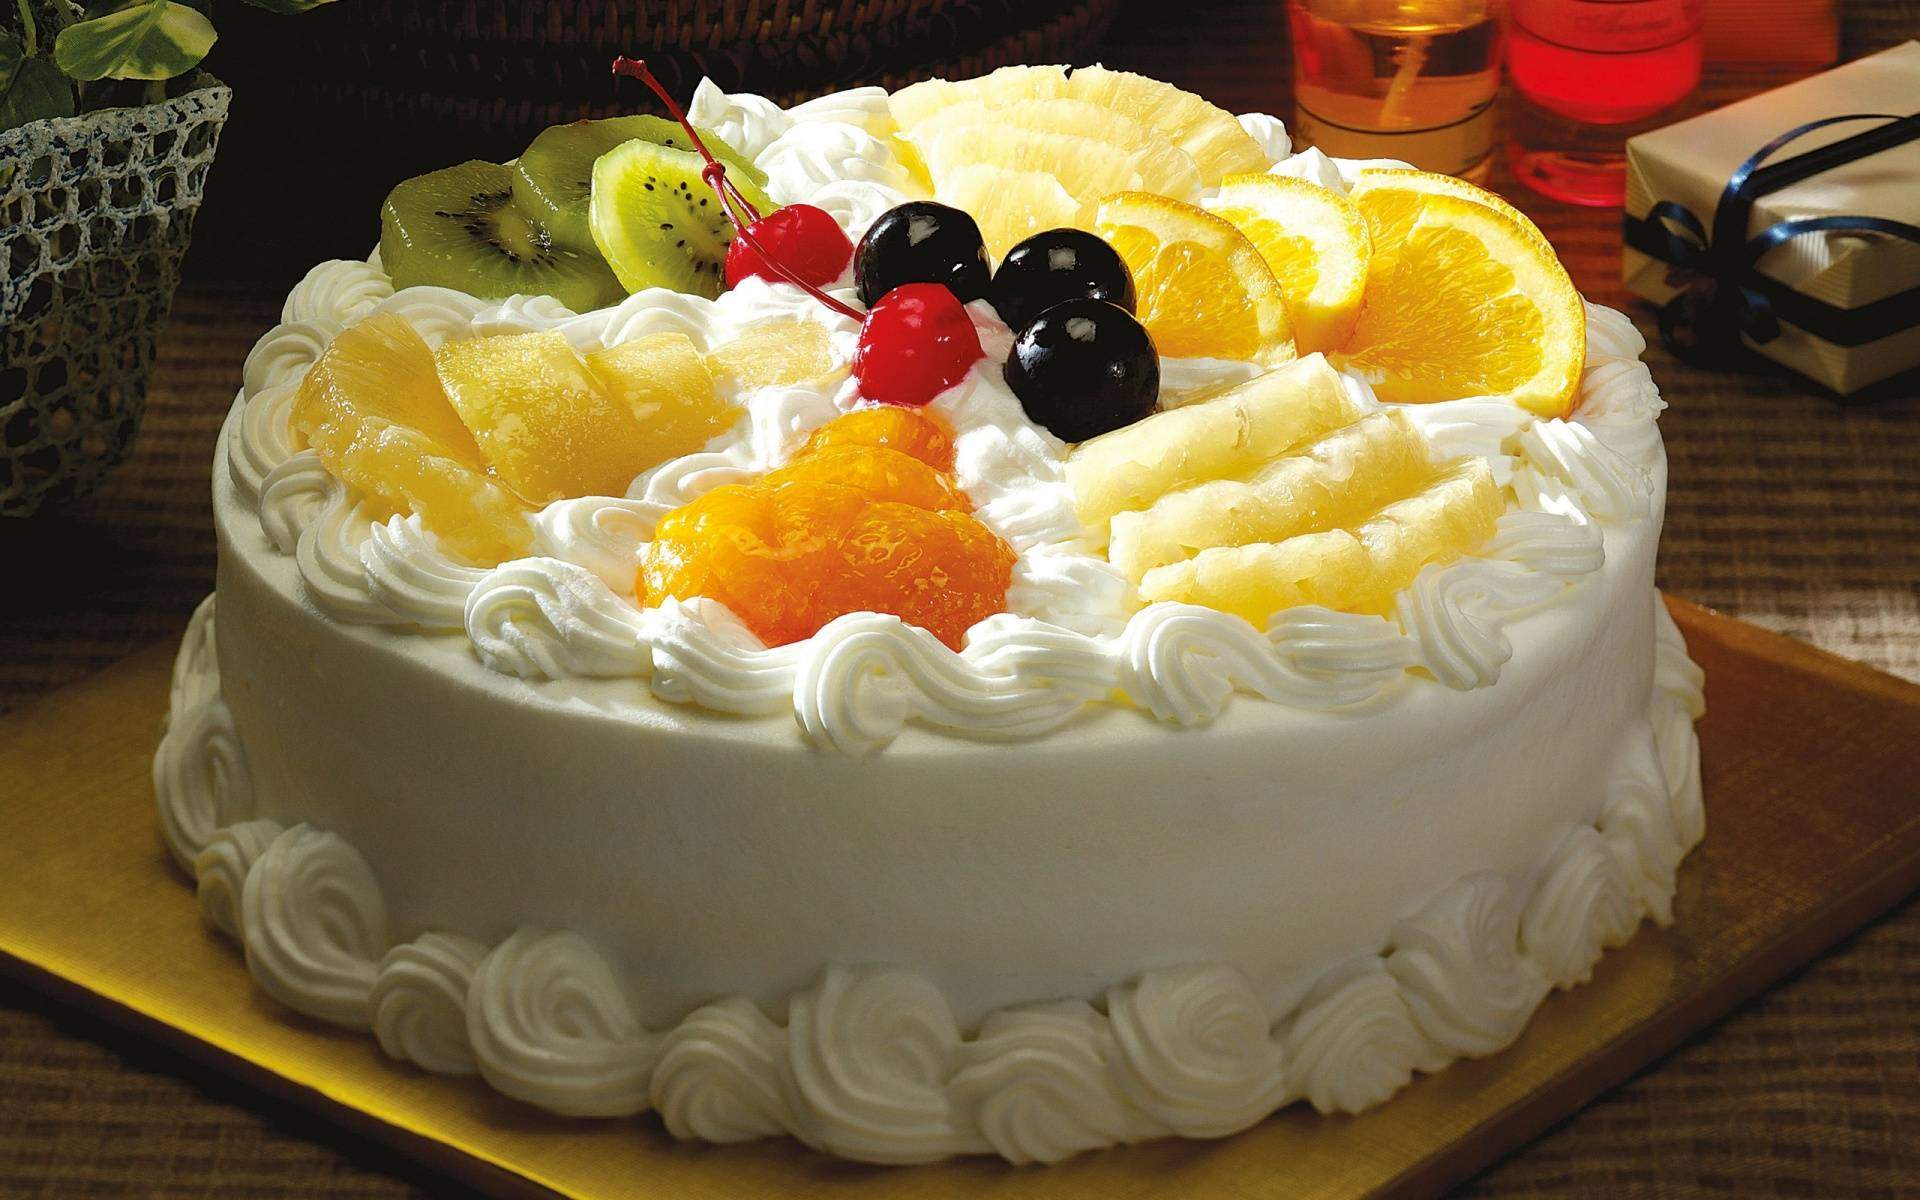 fruit-cake-creamy-cake-with-fruits-and-berries-20140718144150-53c9322ec4082